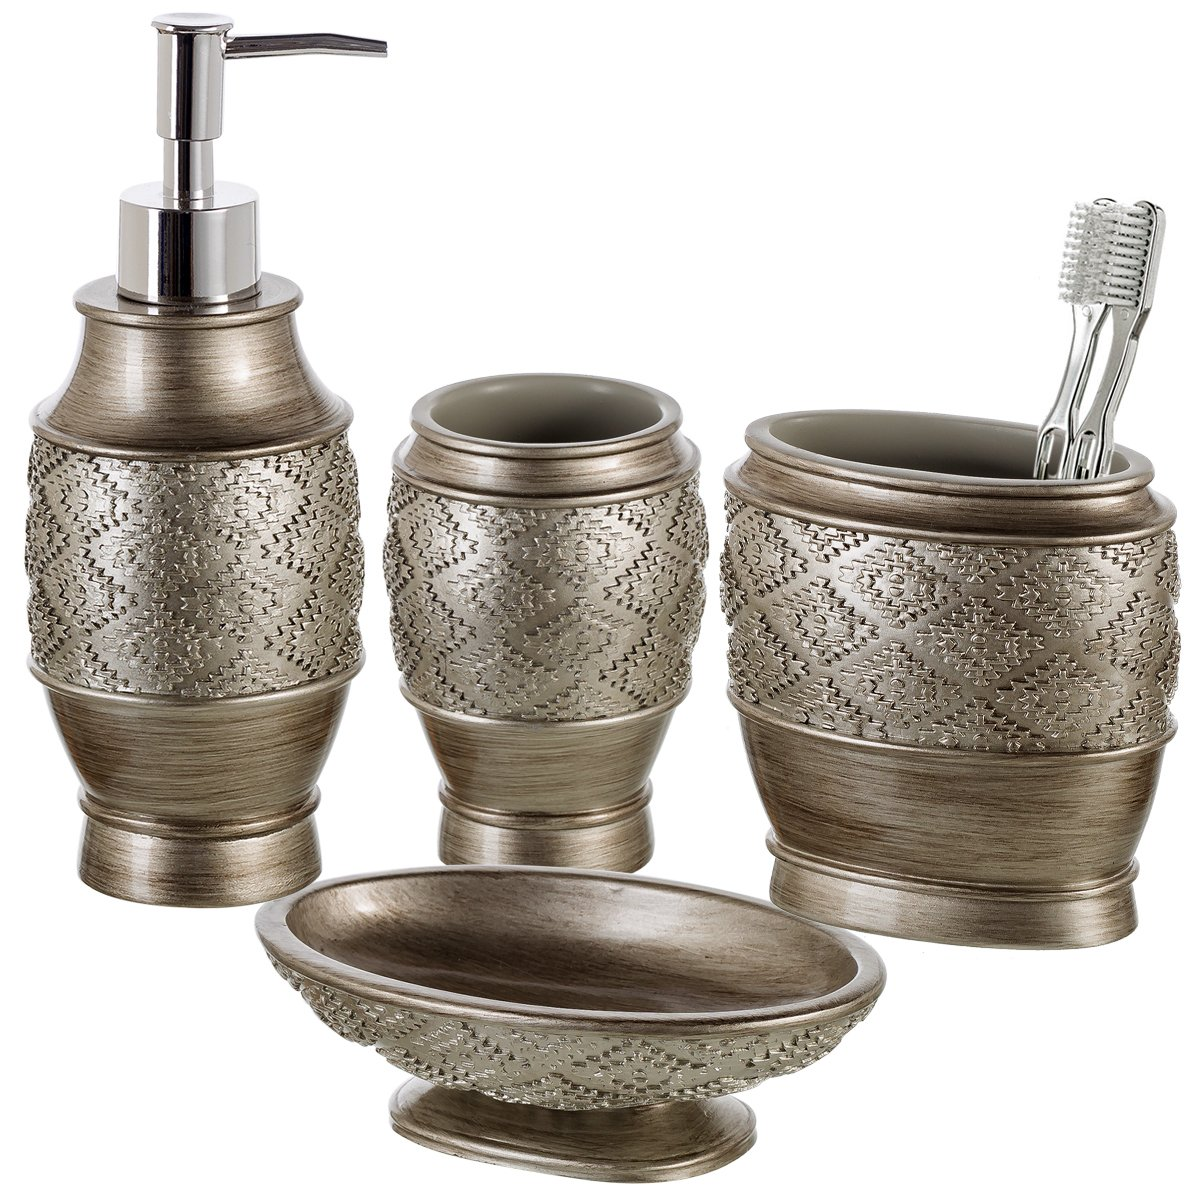 Dublin 4-Piece Bathroom Accessories Set - Includes Decorative Countertop Soap Dispenser, Dish, Tumbler, Toothbrush Holder, Resin Vanity Ensemble Set, Gift Boxed (Brushed Silver)